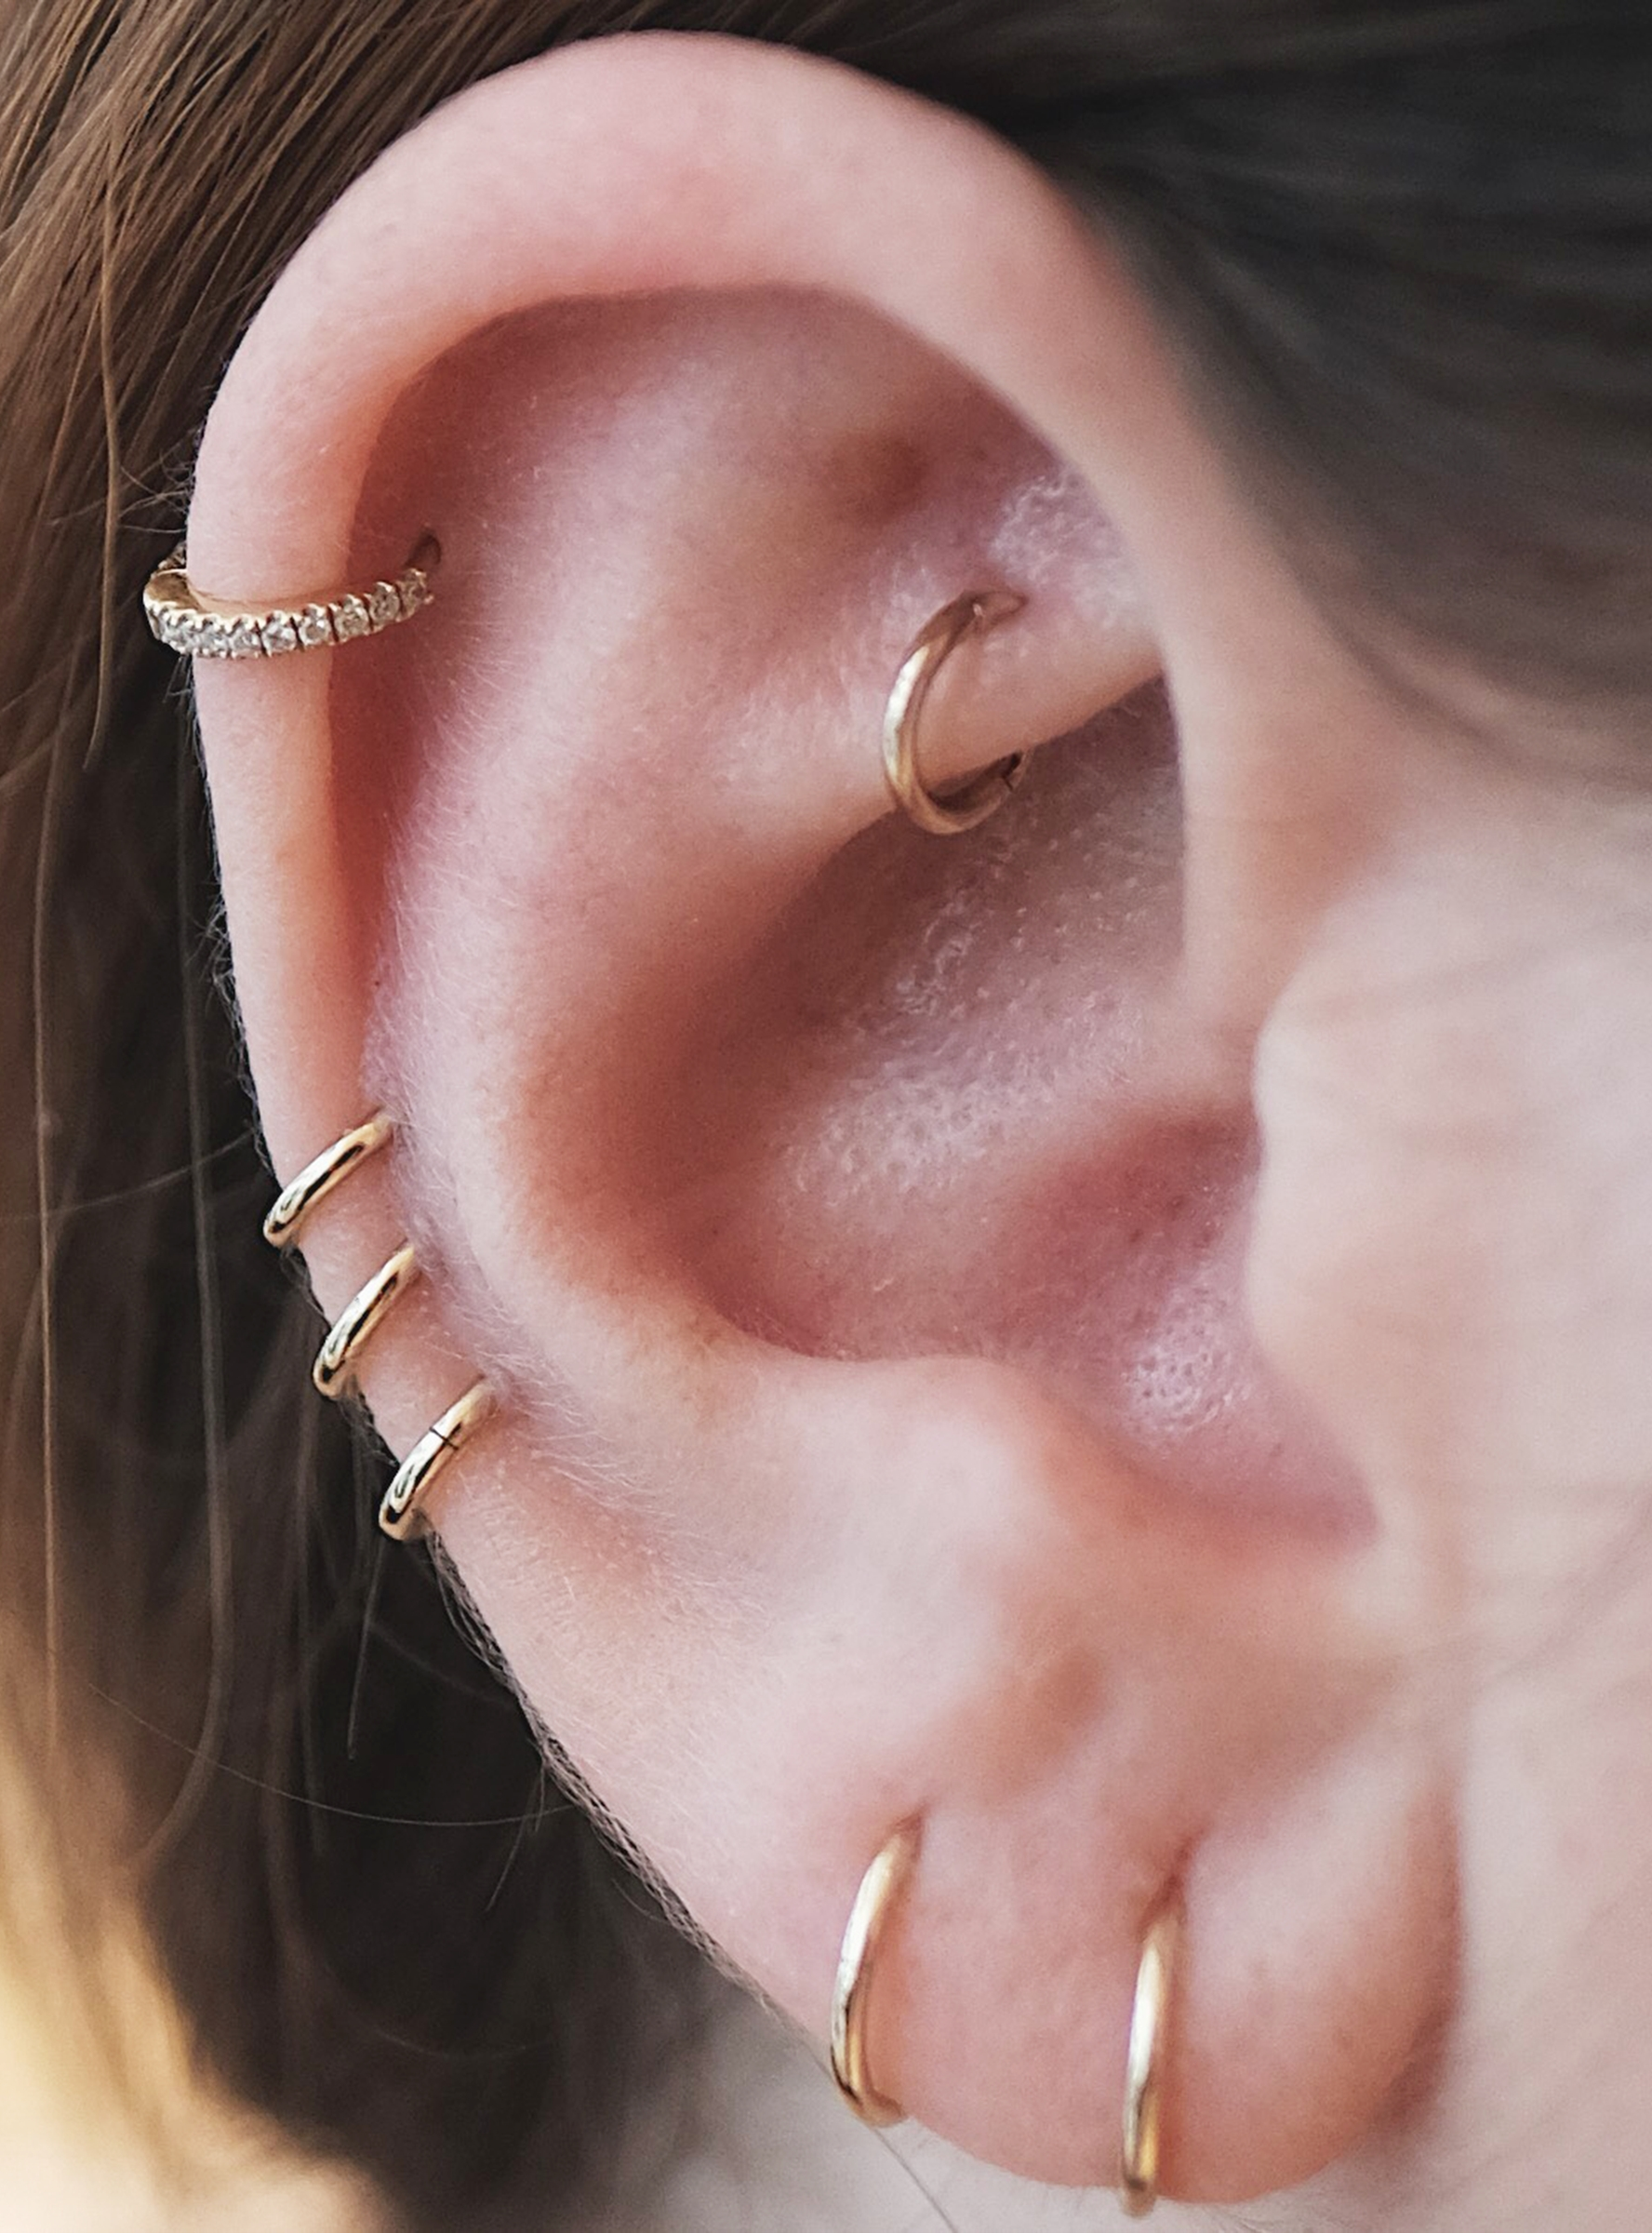 10 Fashionable Cute Piercing Ideas For Girls the coolest piercings new york girls are getting right now 2021